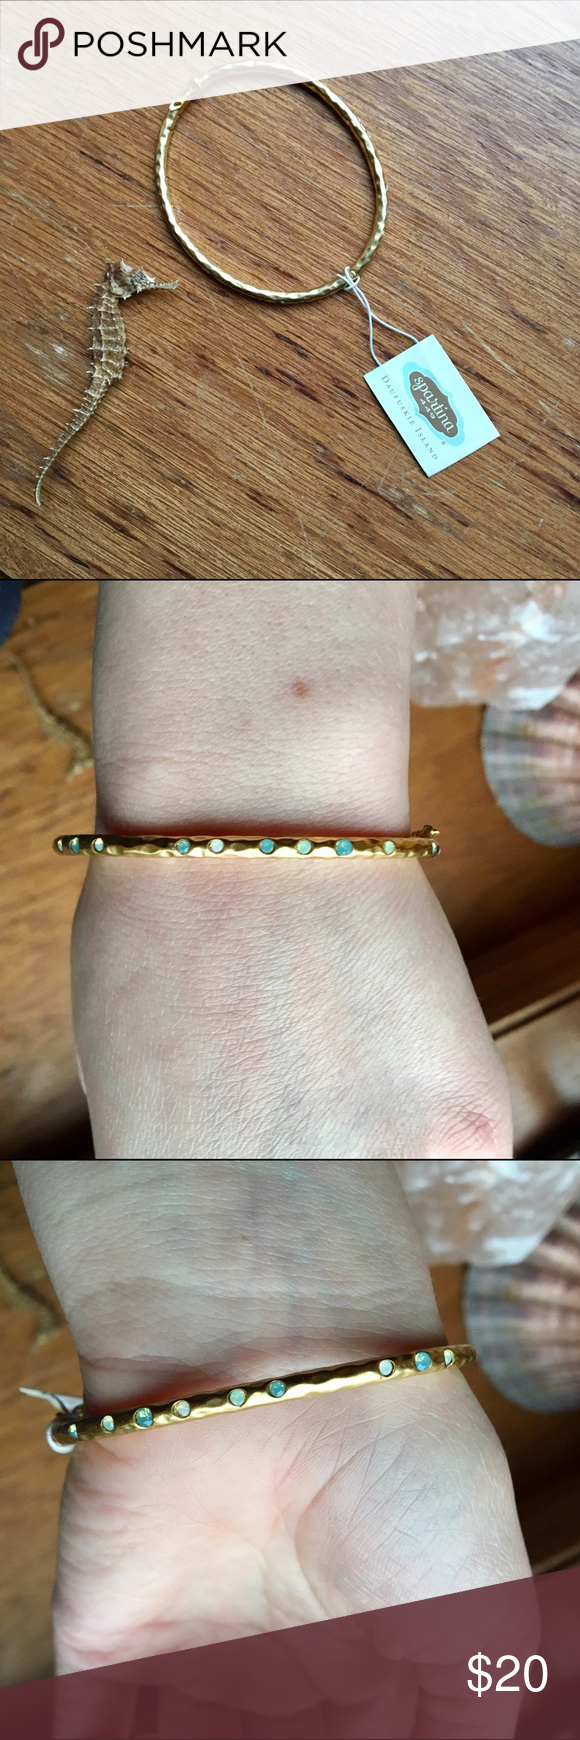 Spartina Gold Seafoam Bangle Super cute! Gold-plated. Can be worn on its own as a statement, or layered. Spartina Jewelry Bracelets